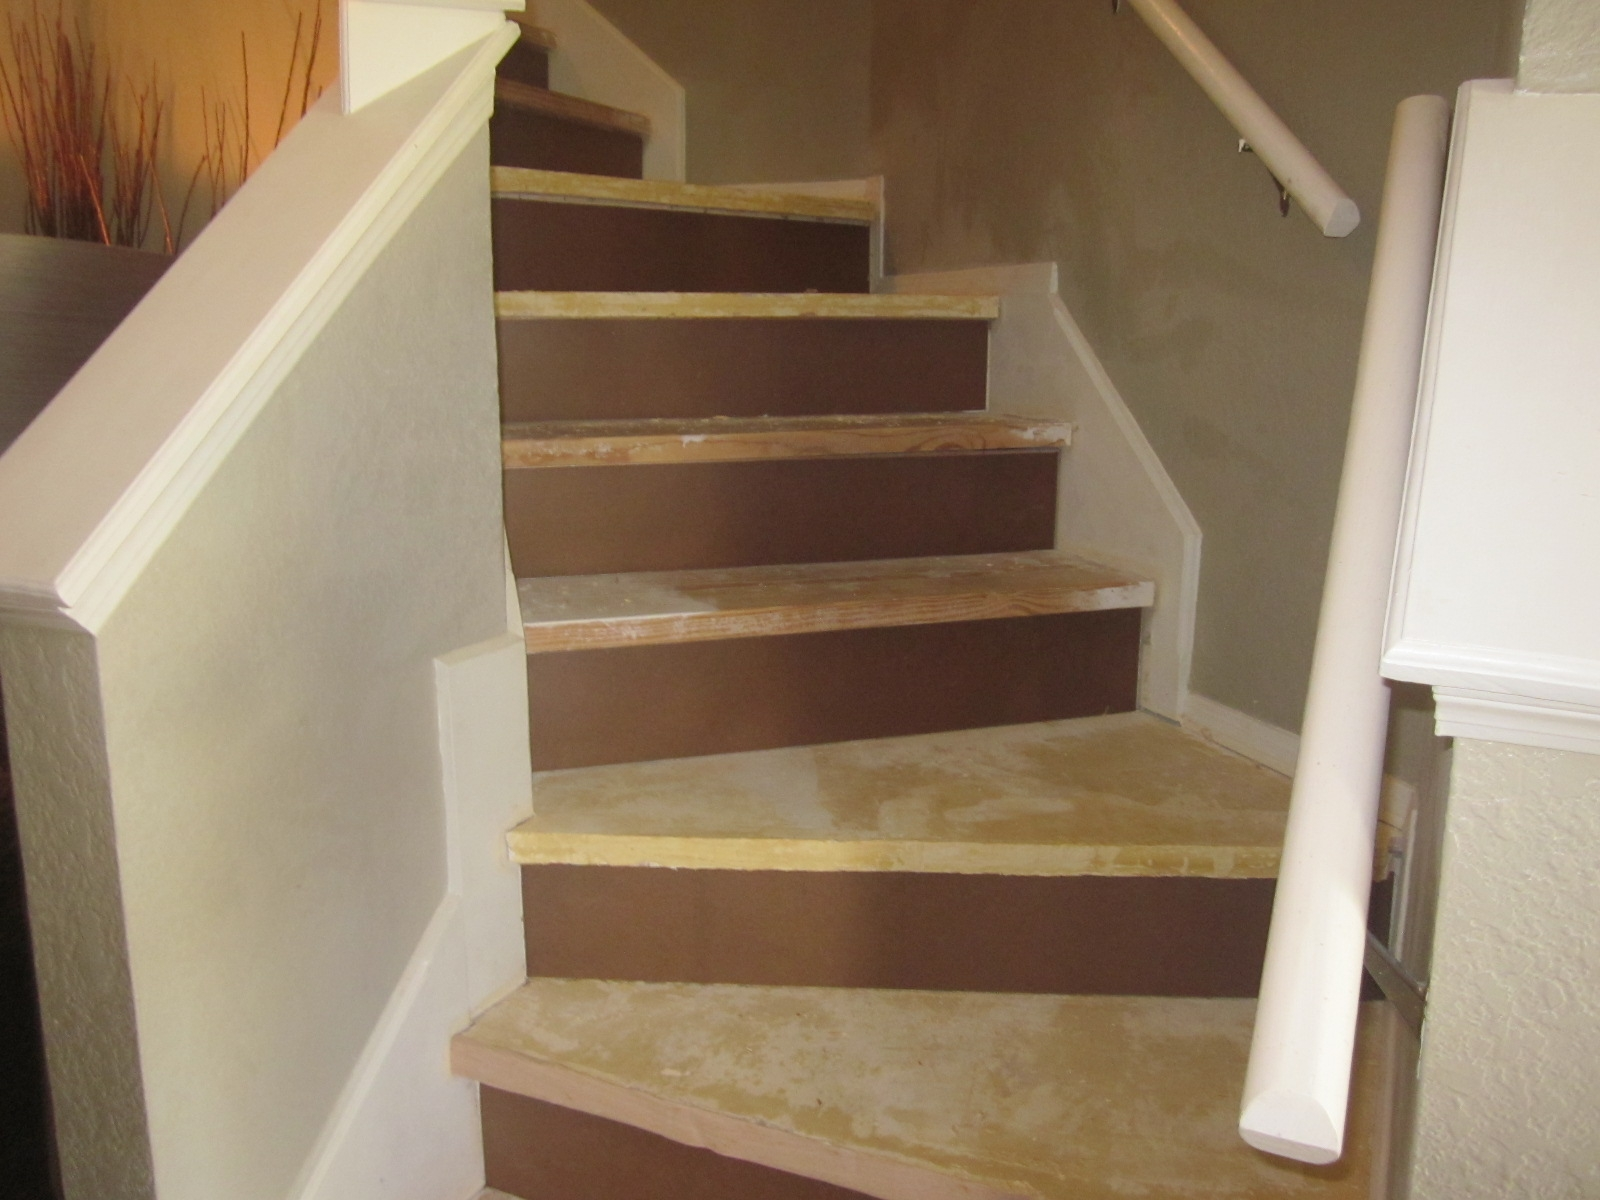 How We Refinished Our Stairs Diy Style Design Gab With Adentro   Particle Board Stair Treads   Uncarpeted   Mdf   Refinish   Rough Cut   Recycled